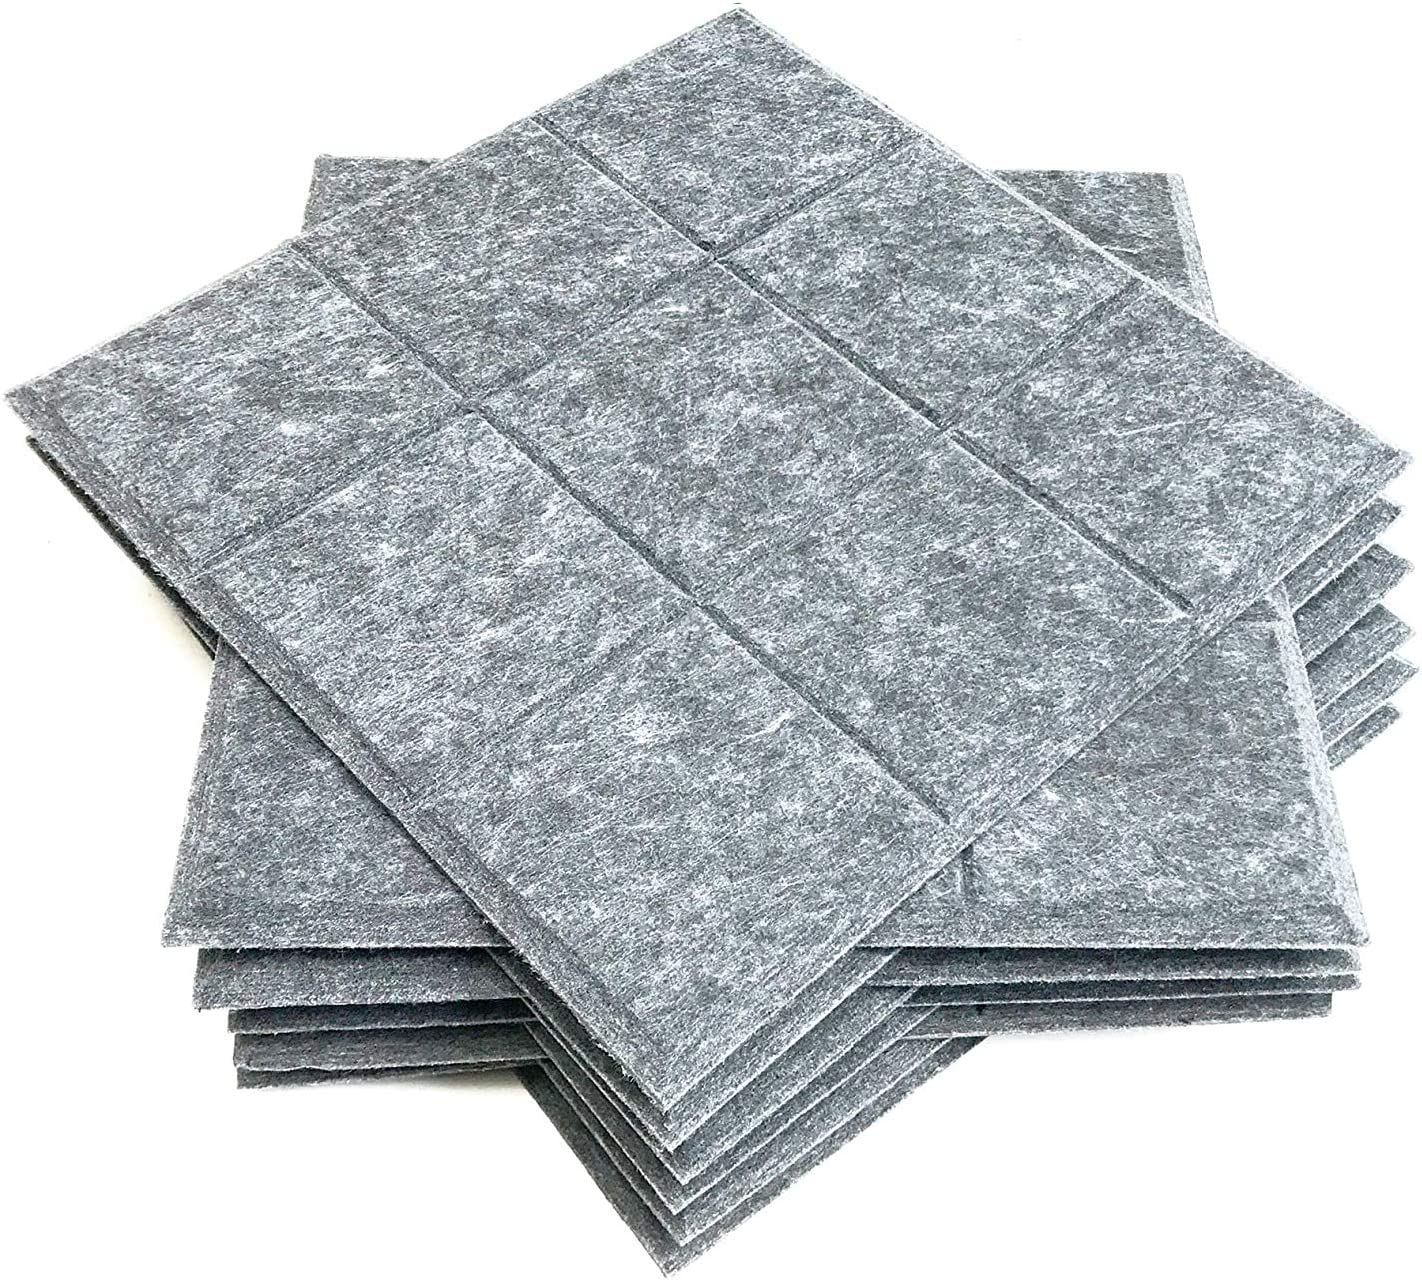 12 Pack Set Acoustic Absorption Panel, 12 X 12 X 0.4 Inches Grey Acoustic Soundproofing Insulation Panel Beveled Edge Tiles, Acoustic Treatment Used in Home & Offices, 9 Blocks Square Design